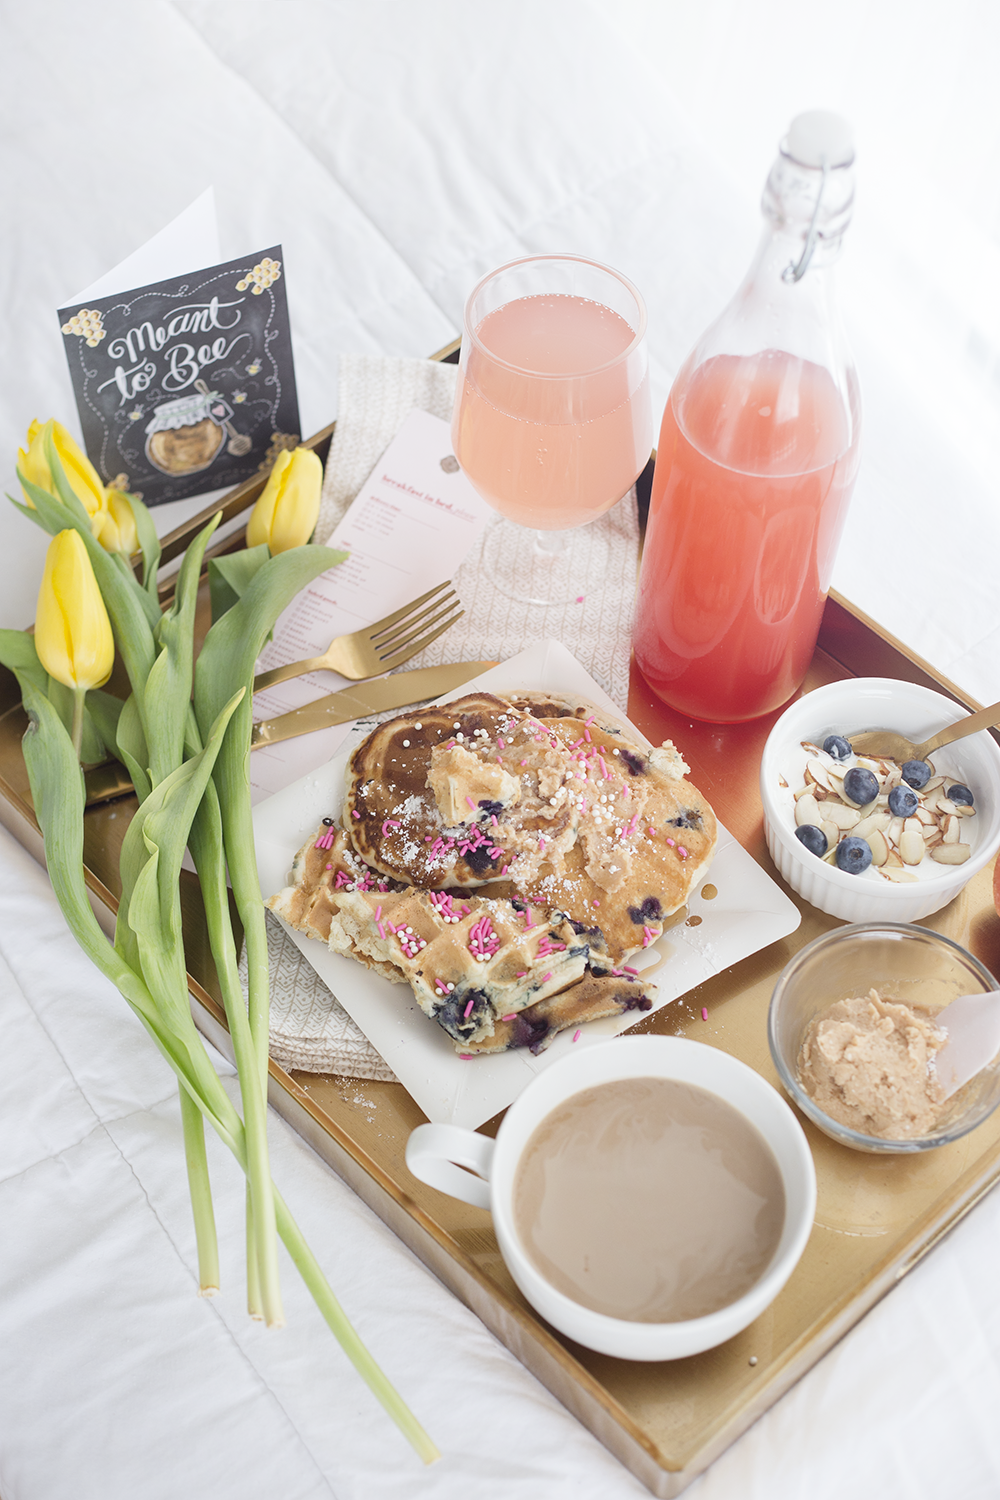 breakfast in bed | cozy date ideas | valentines day breakfast in bed